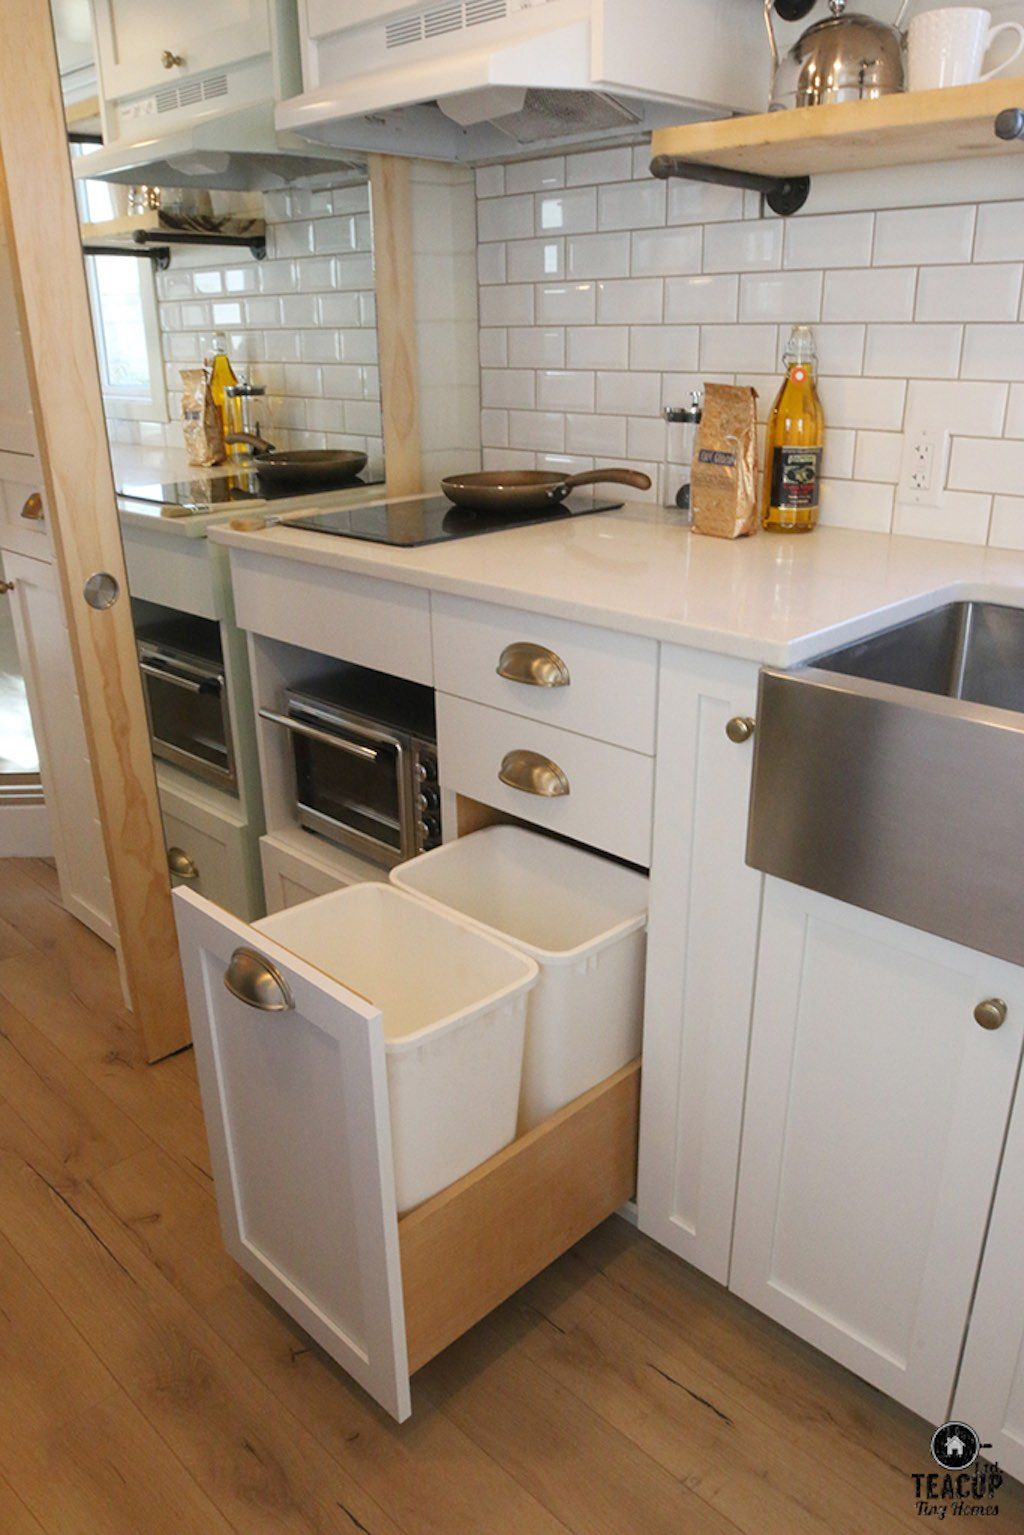 Innisfree Annares - Page 3 of 3 - Tiny House Swoon  LOVE the trash and recycle bins! #tinyhousestorage